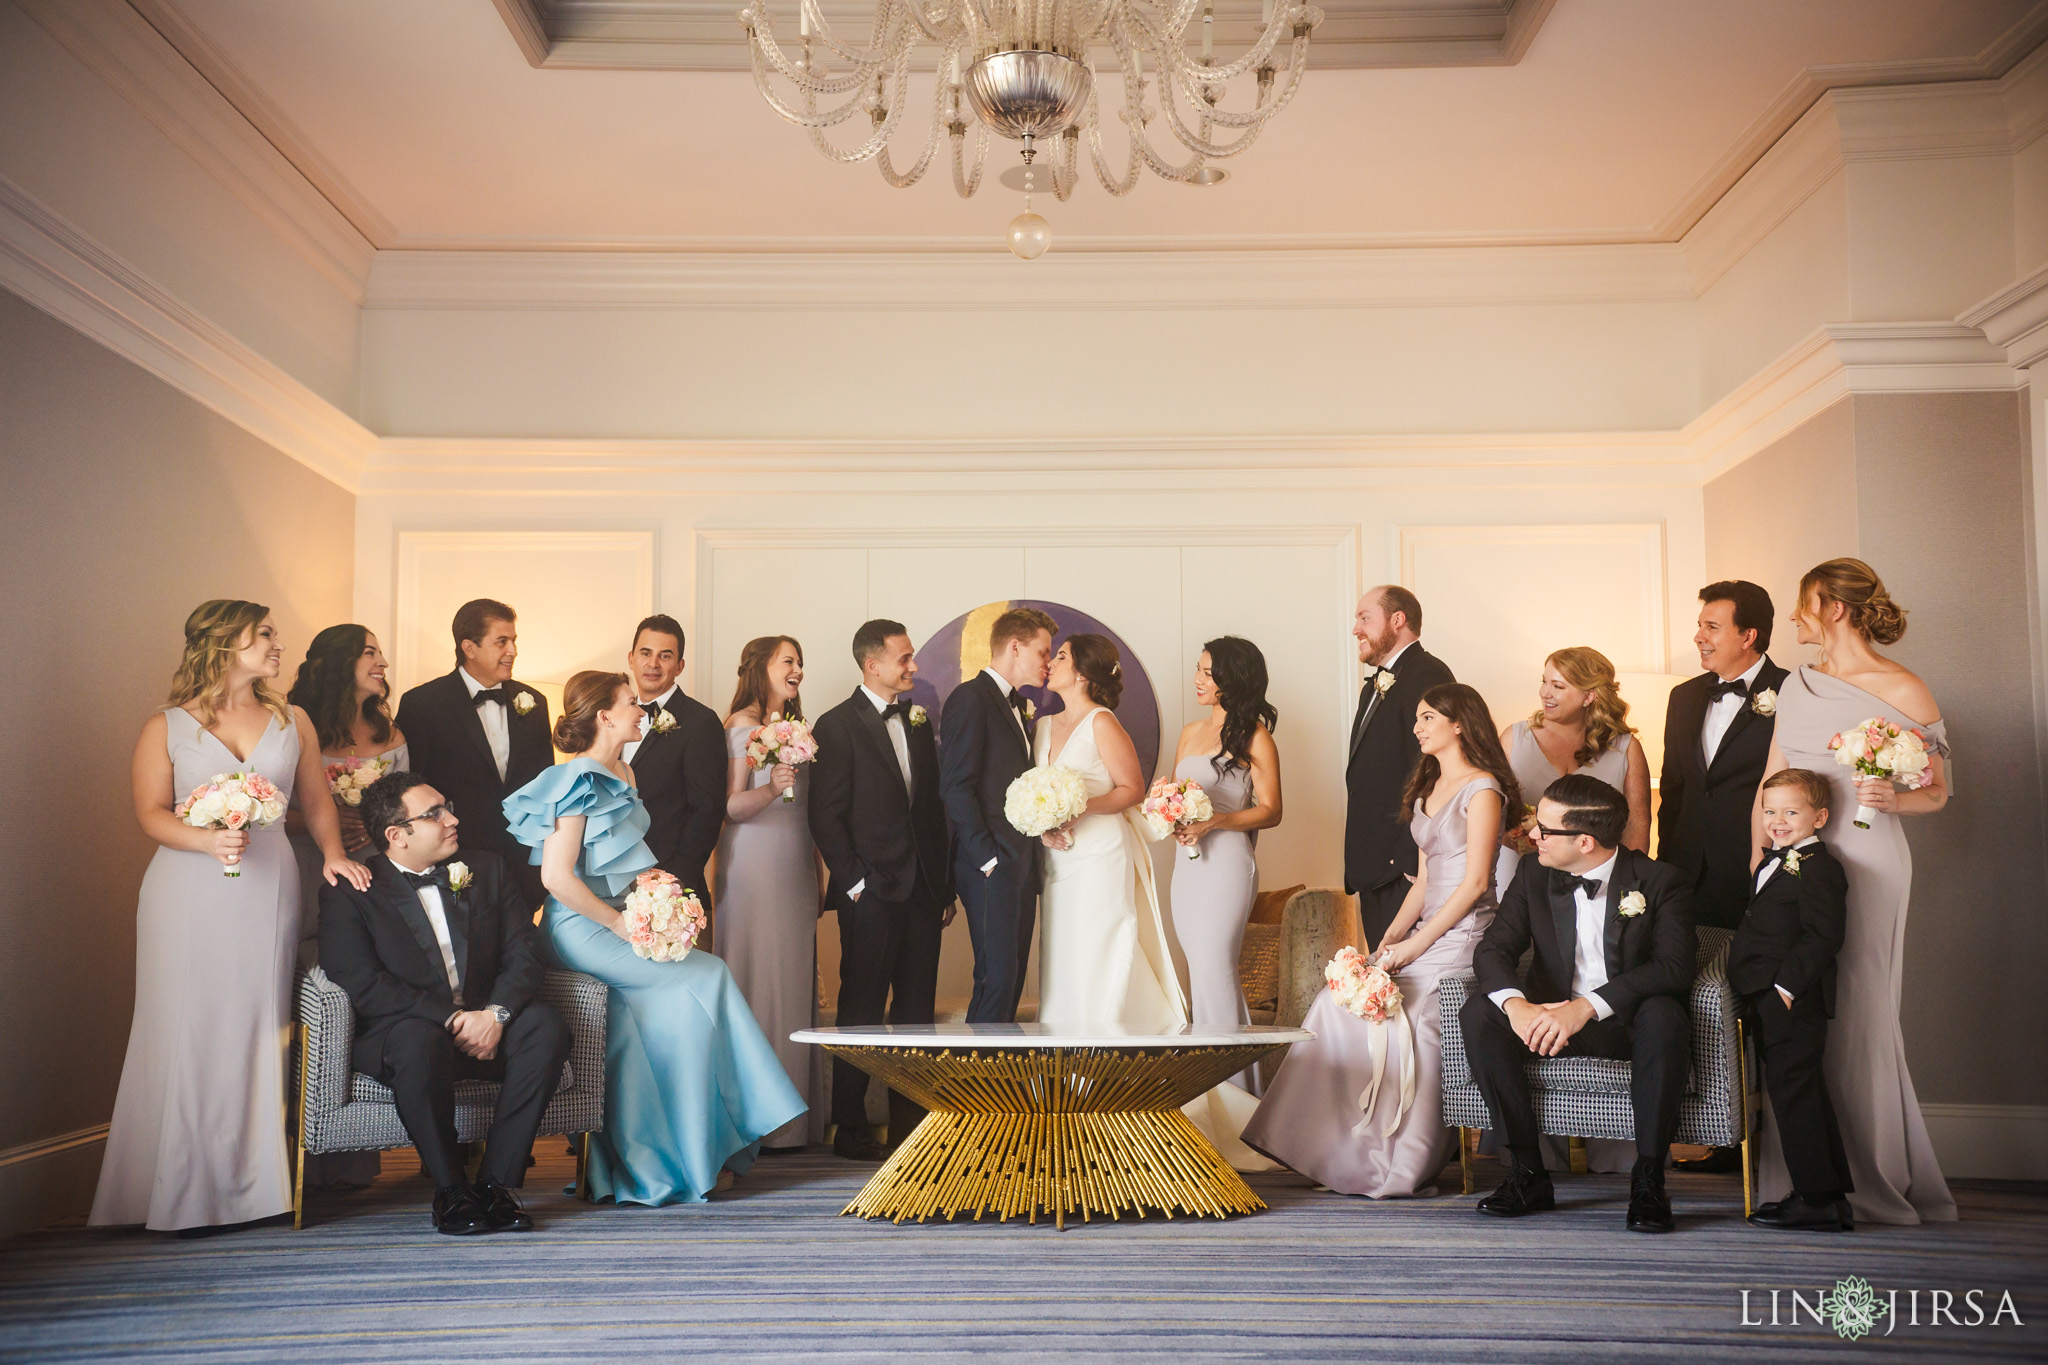 030 ritz carlton marina del rey persian wedding party photography